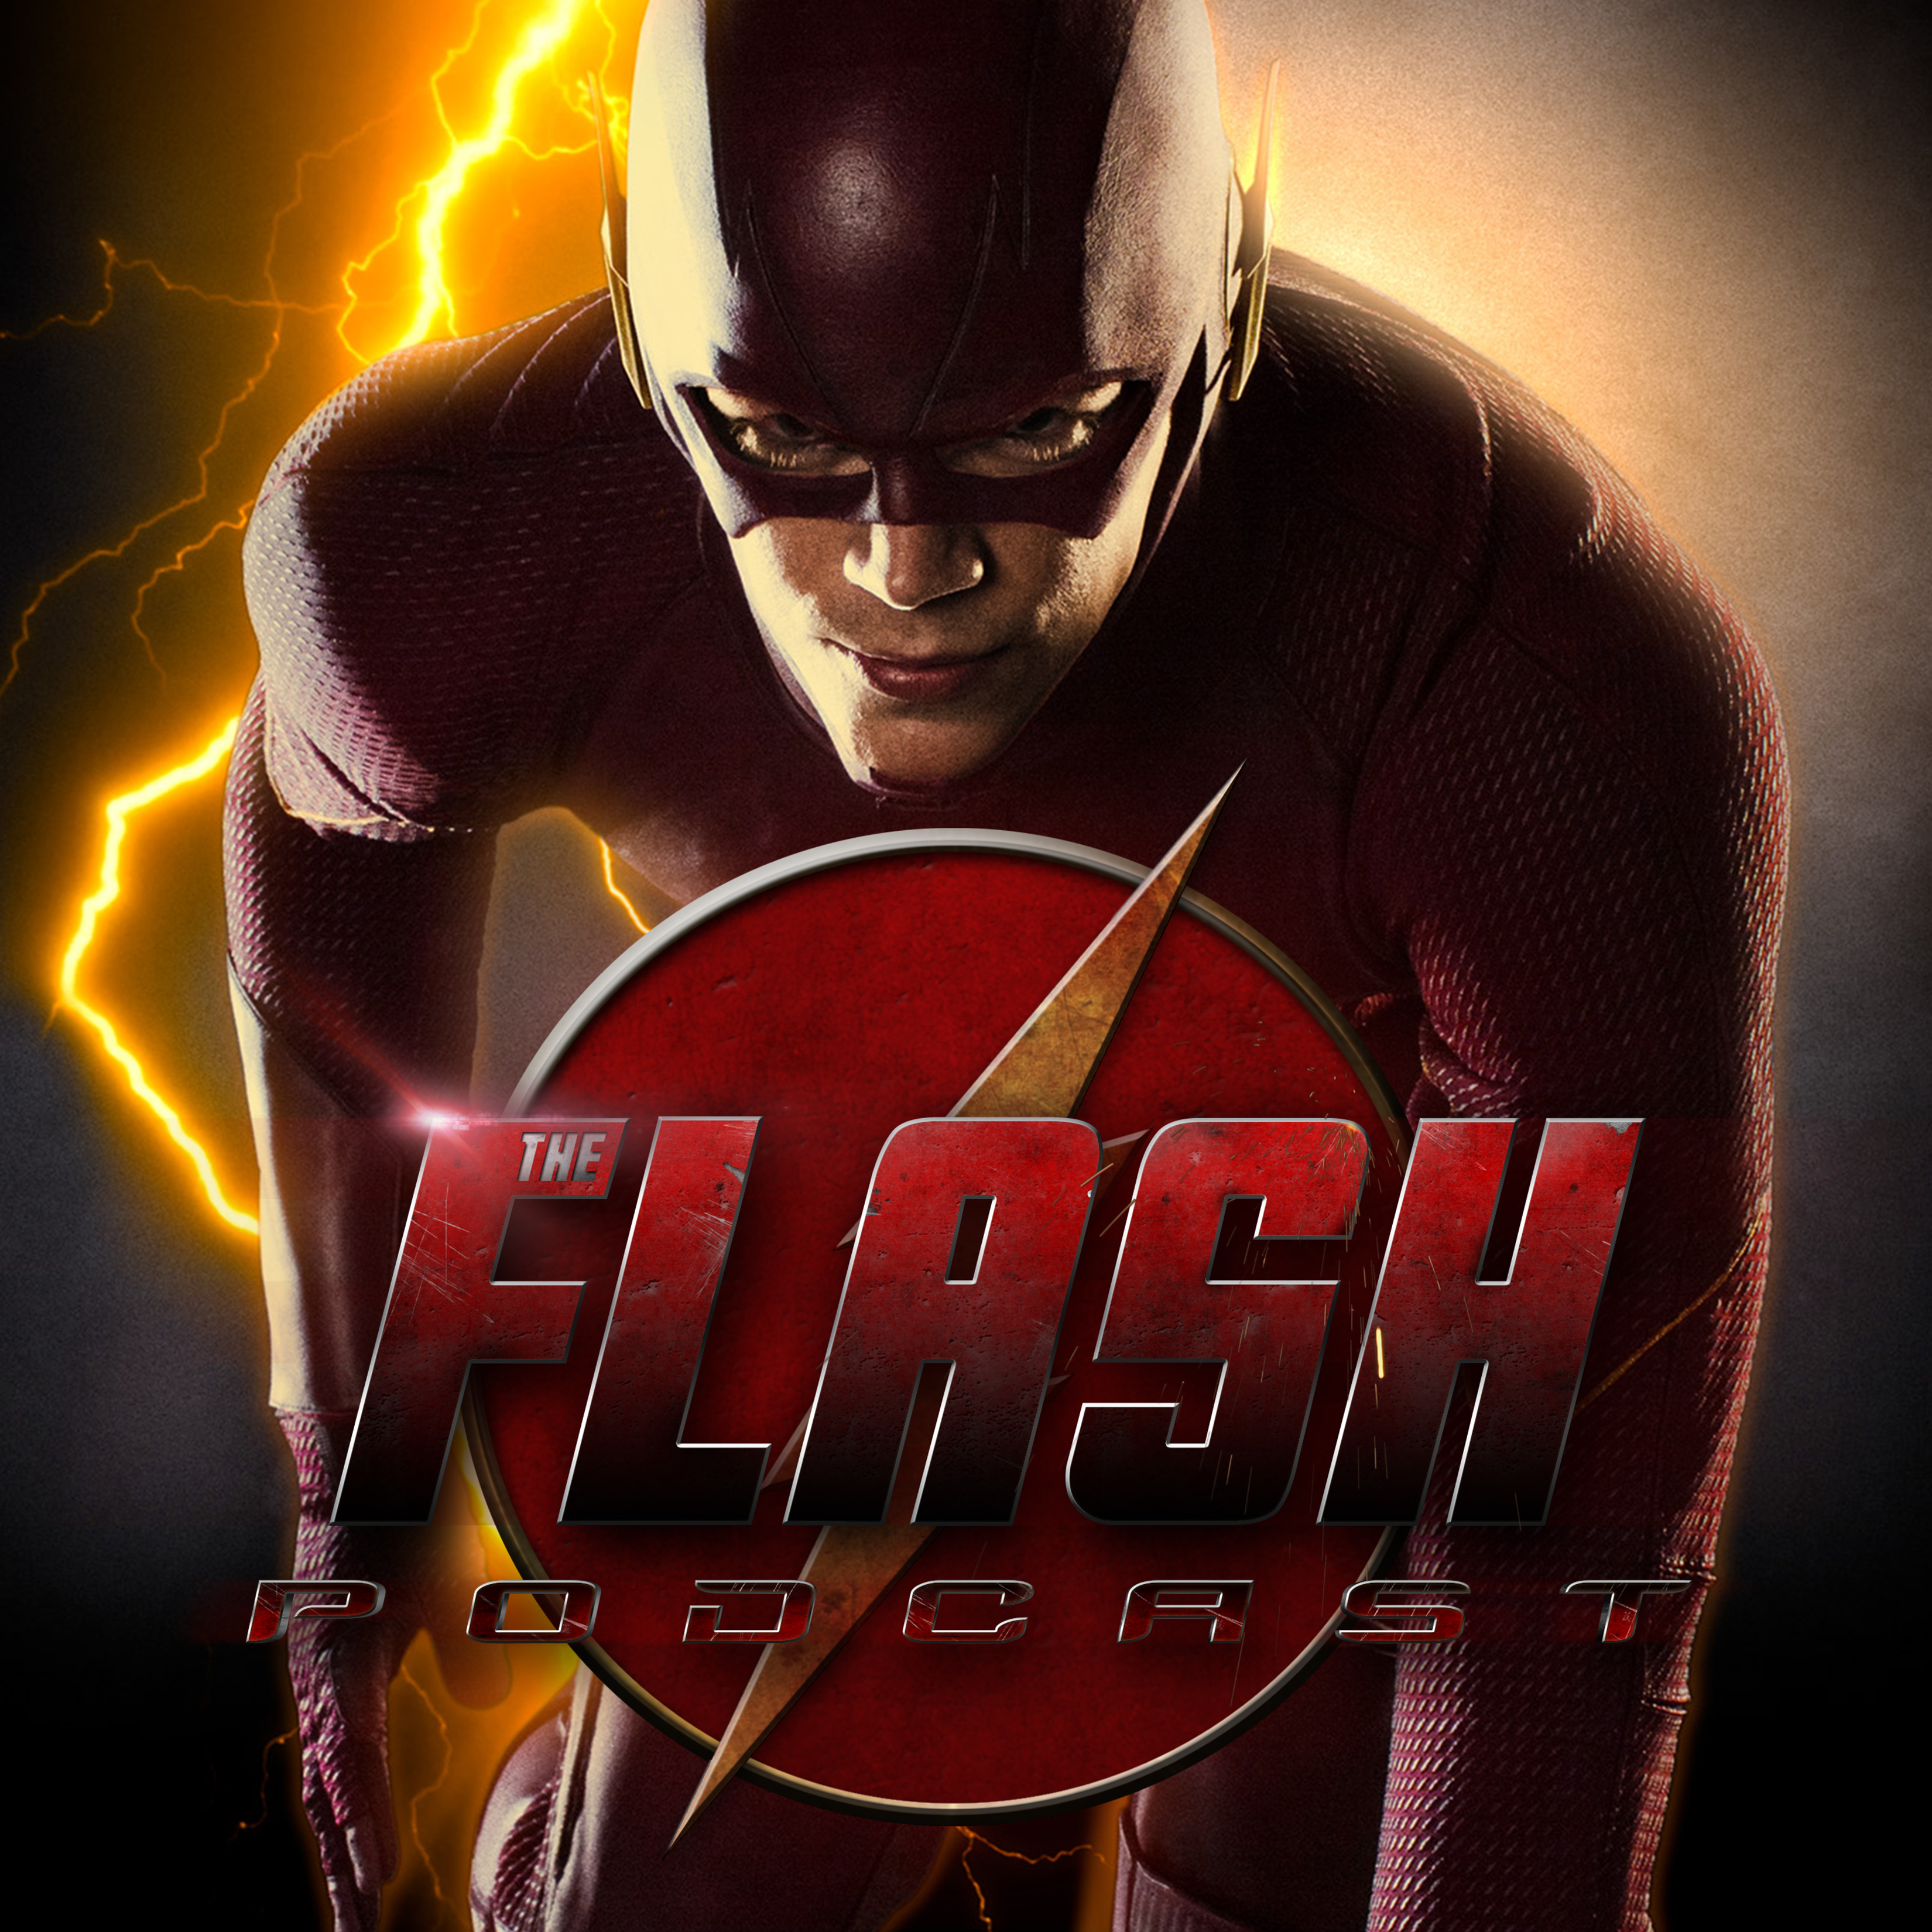 THE FLASH at PaleyFest 2015 | Grant Gustin Talks Barry Stepping Up As a Leader | The Flash Podcast